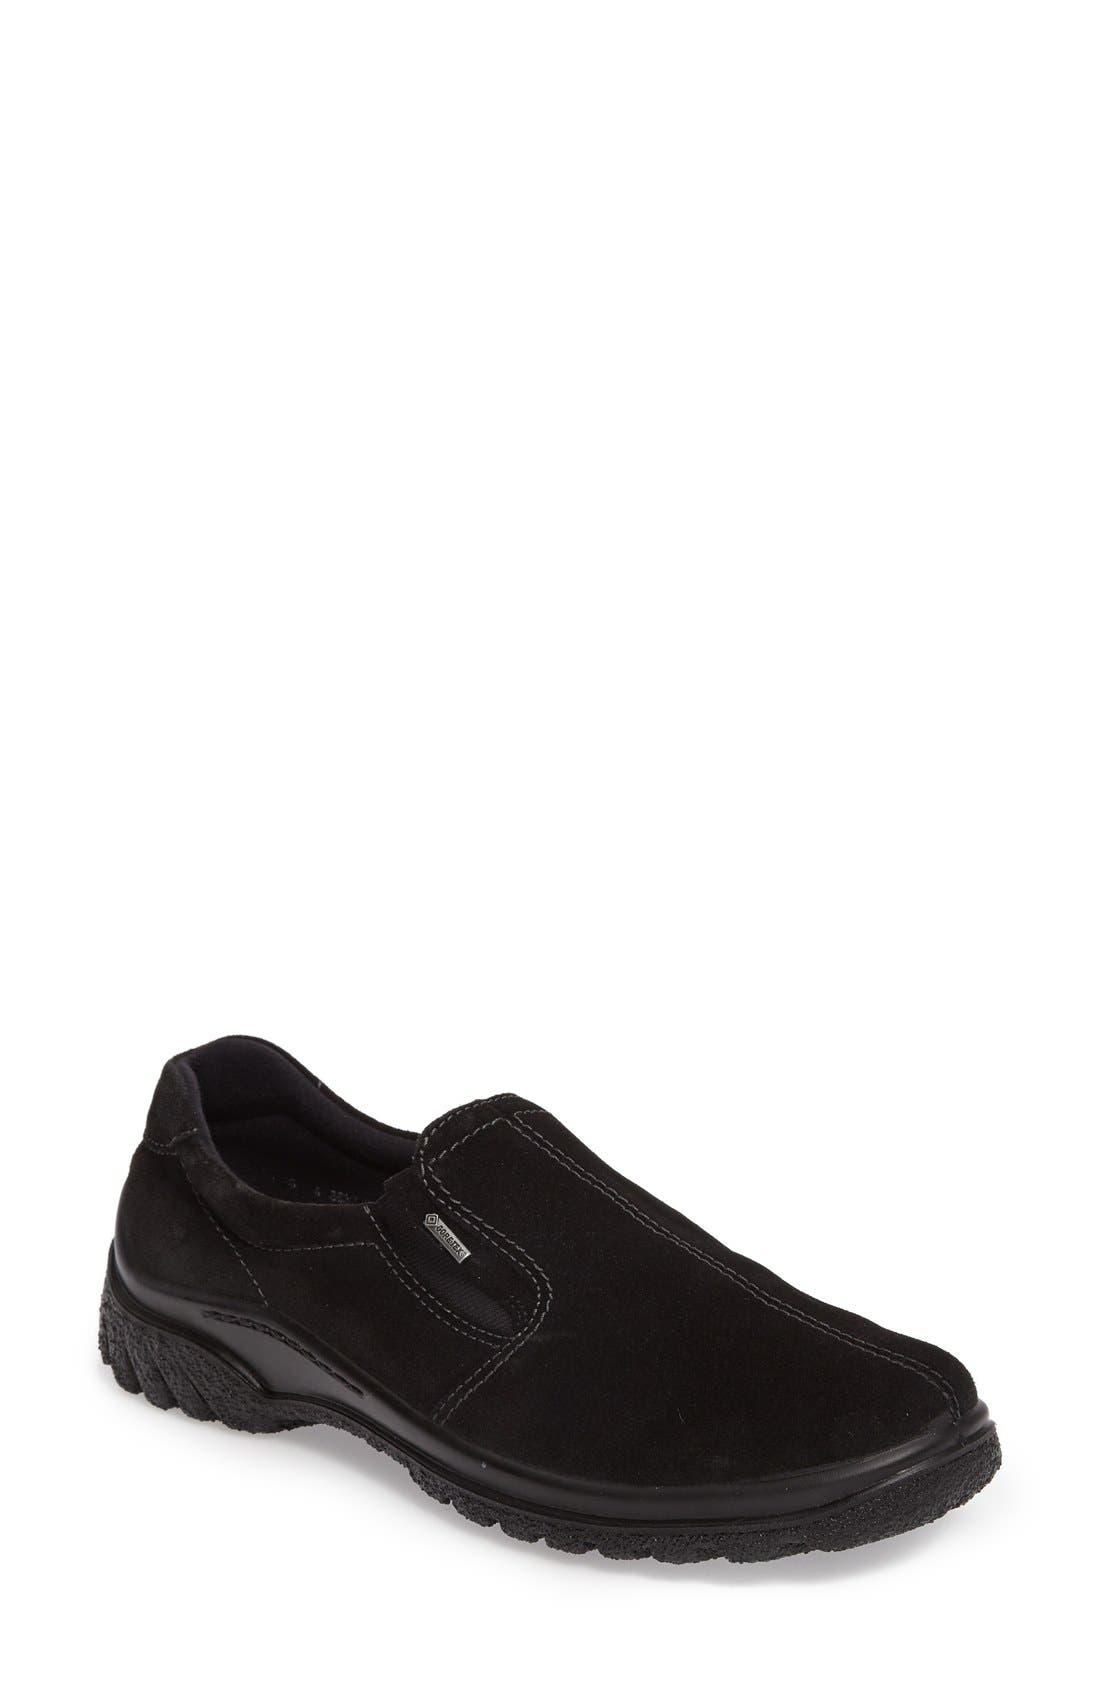 Parson Waterproof Gore-Tex<sup>®</sup> Slip-On Sneaker,                             Main thumbnail 1, color,                             Black Suede